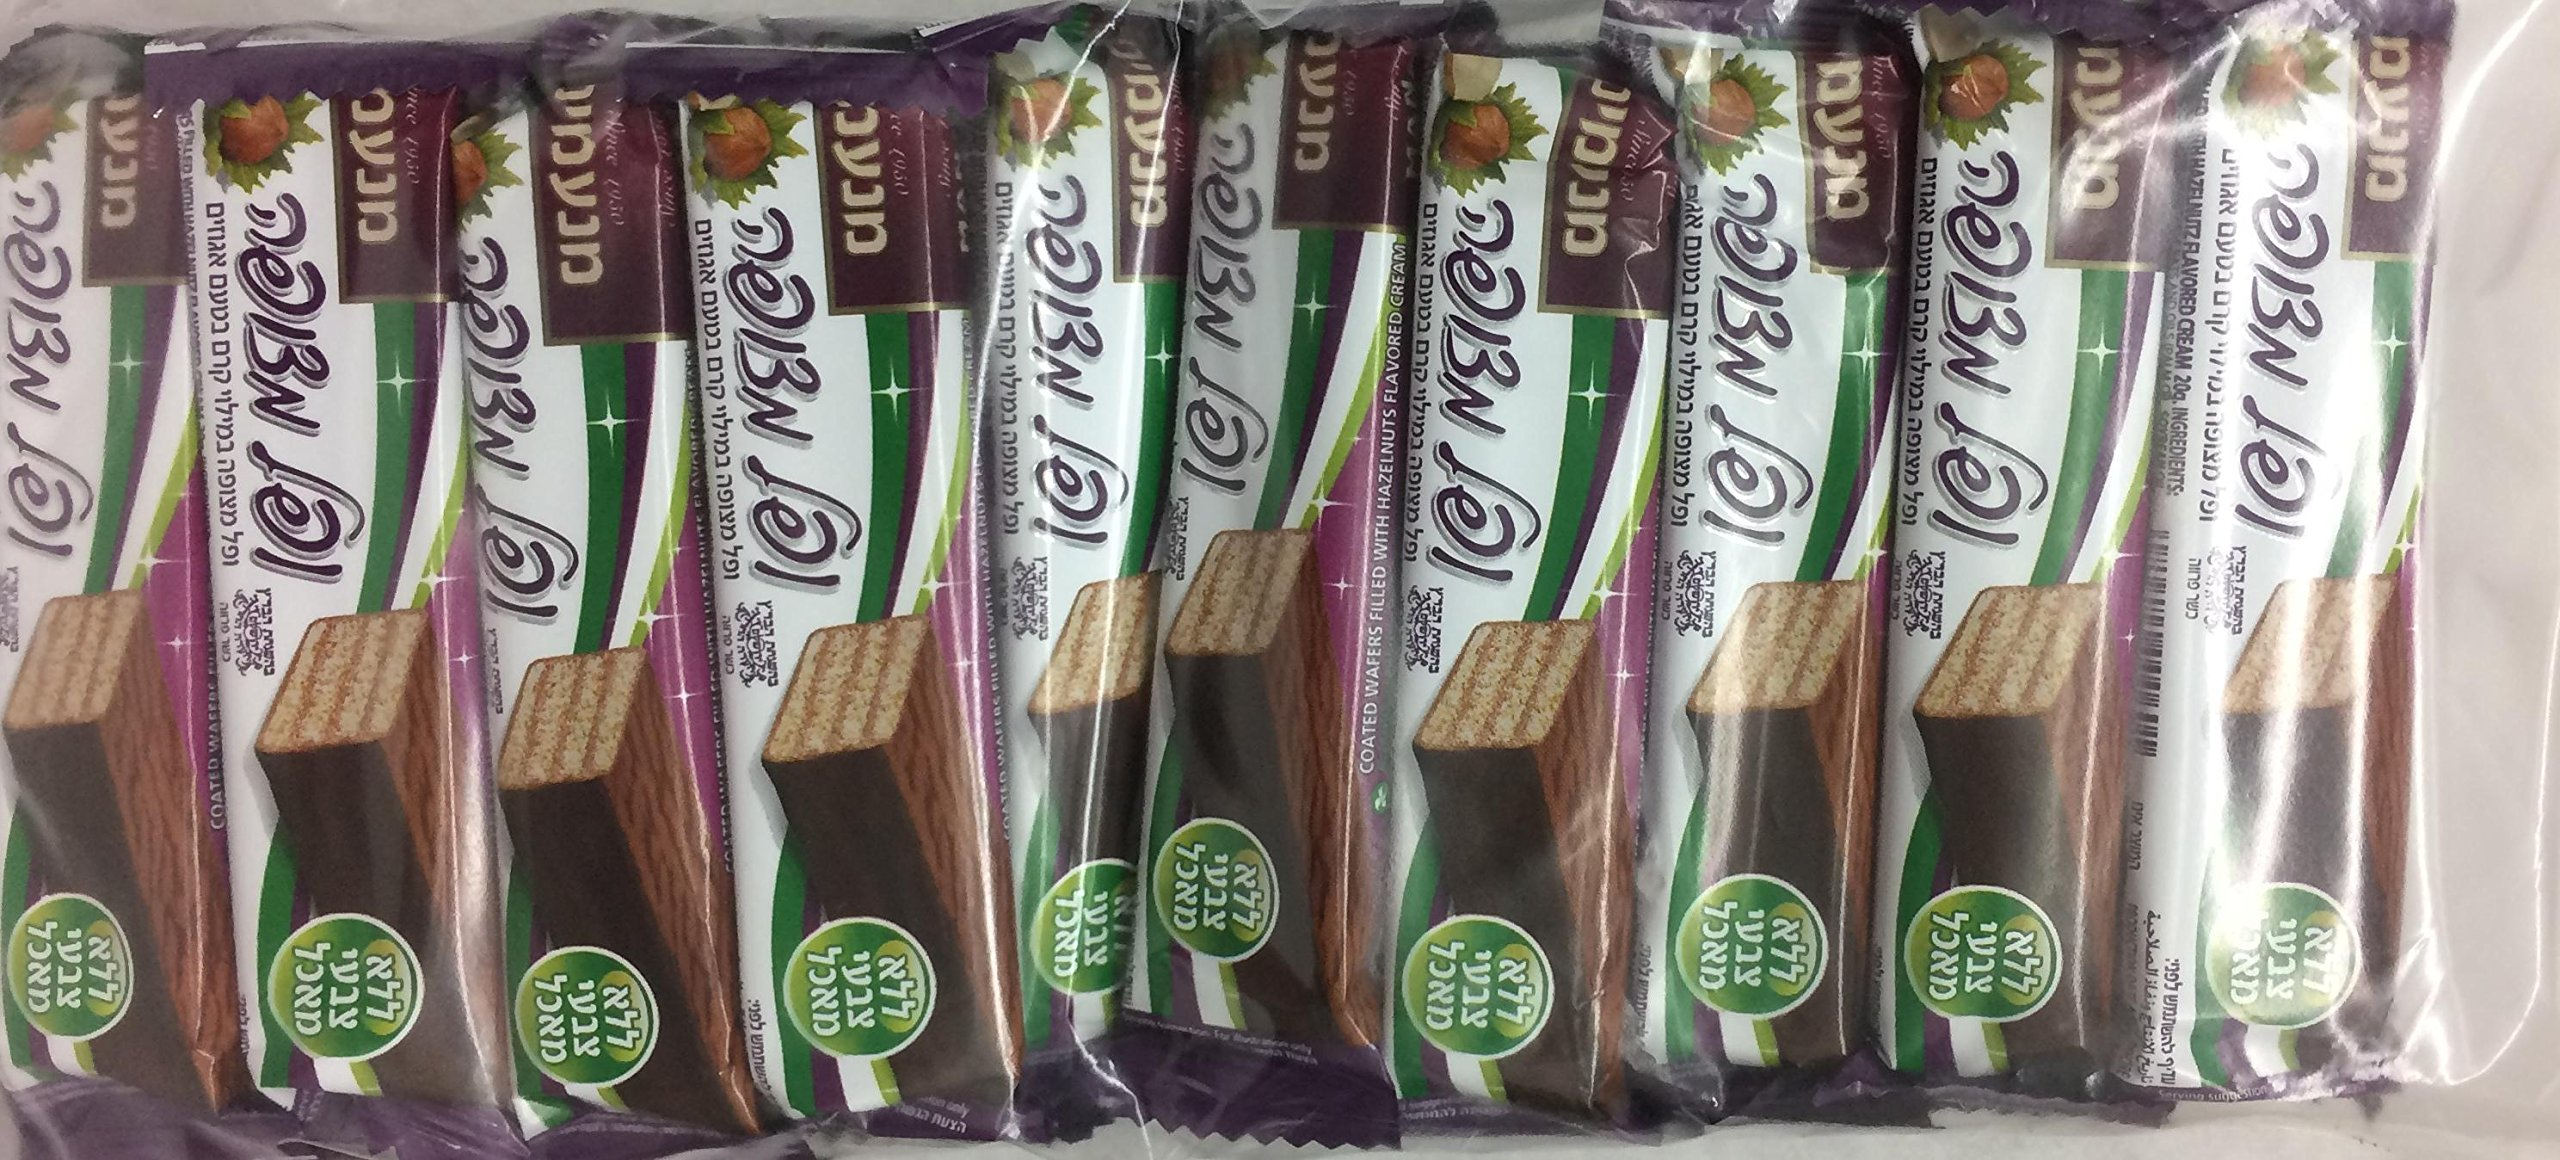 Manamit Coated Wafers Filled With Chocolate 0.7 Oz. Pack Of 3.